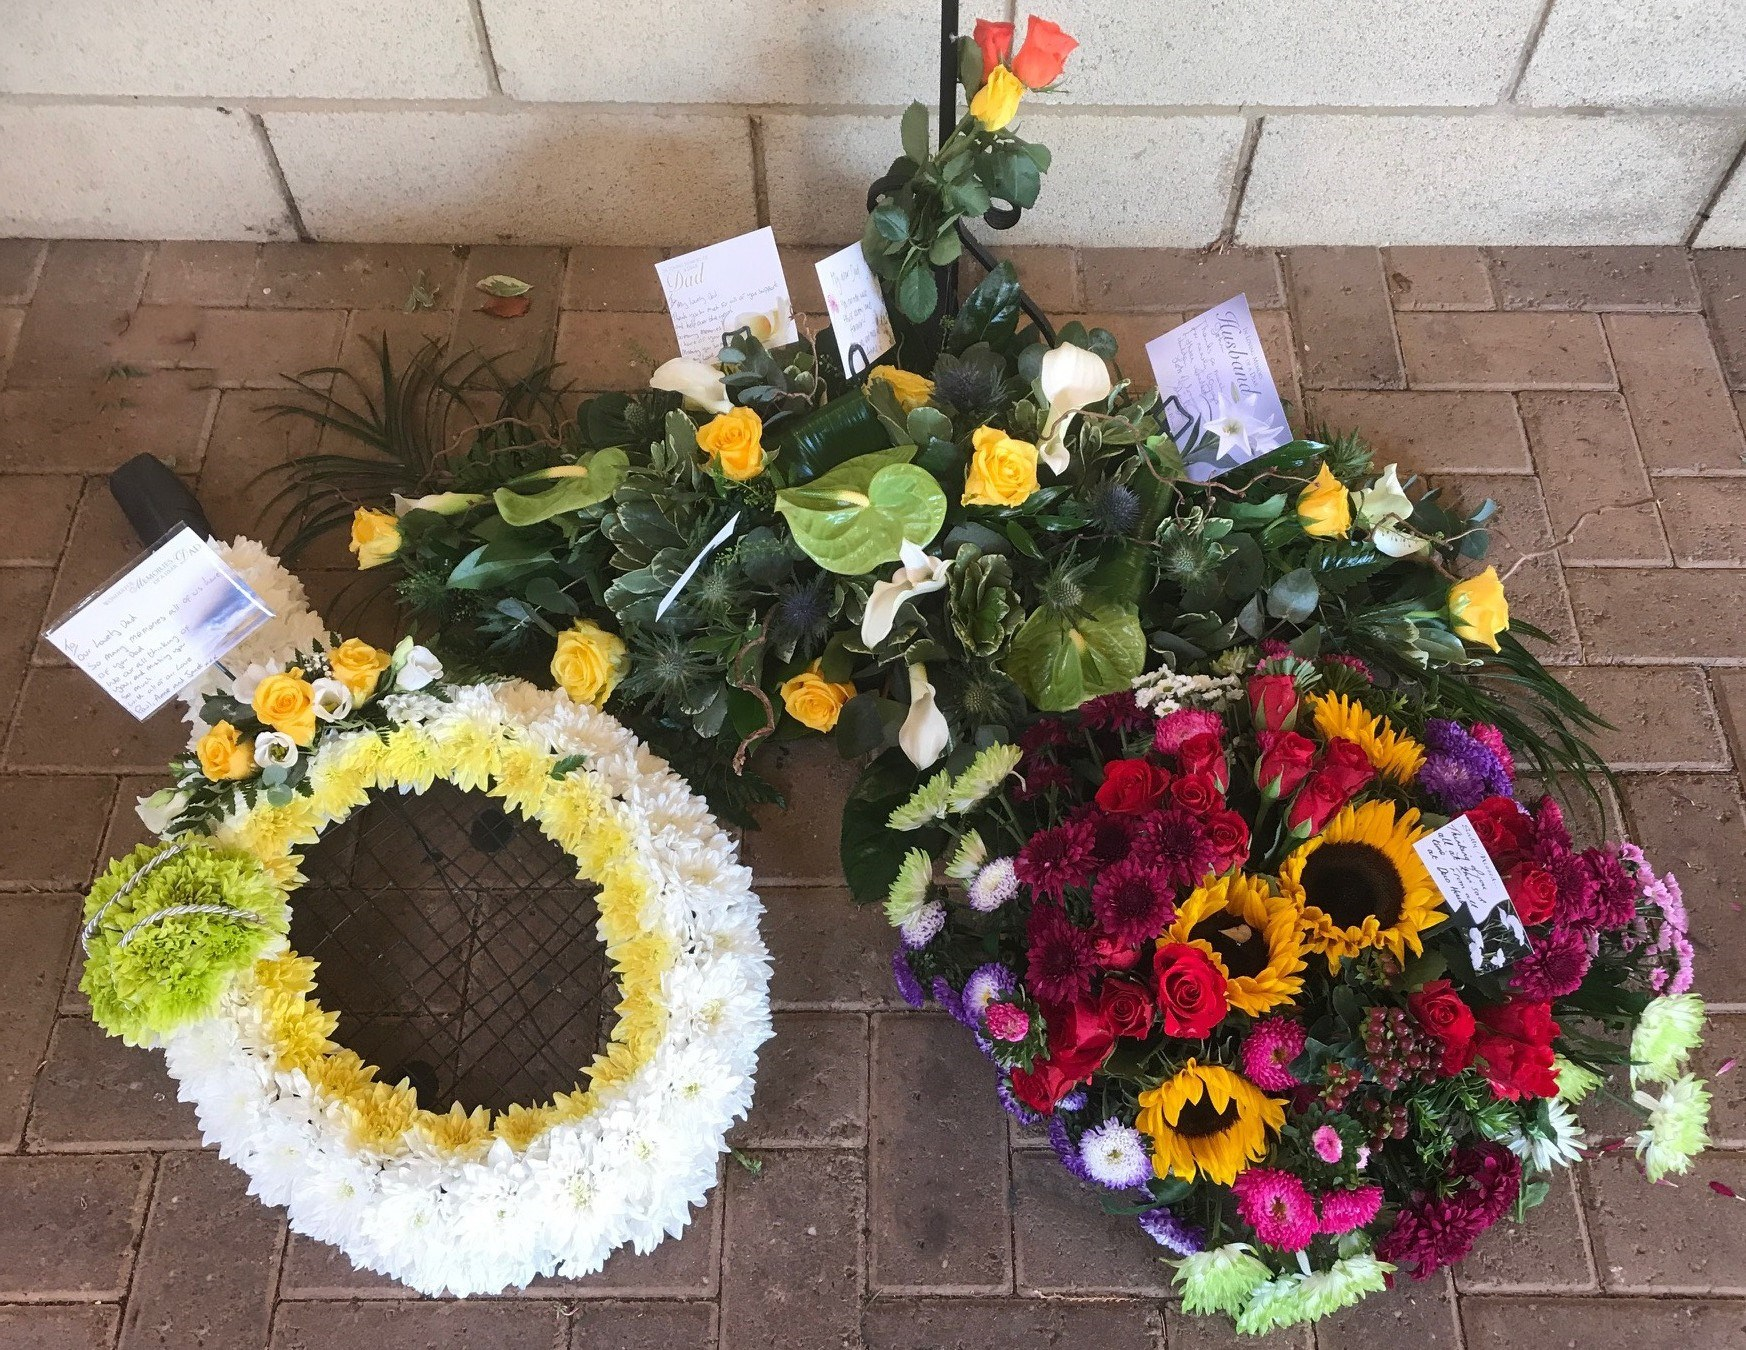 Floral tributes for John Beamish